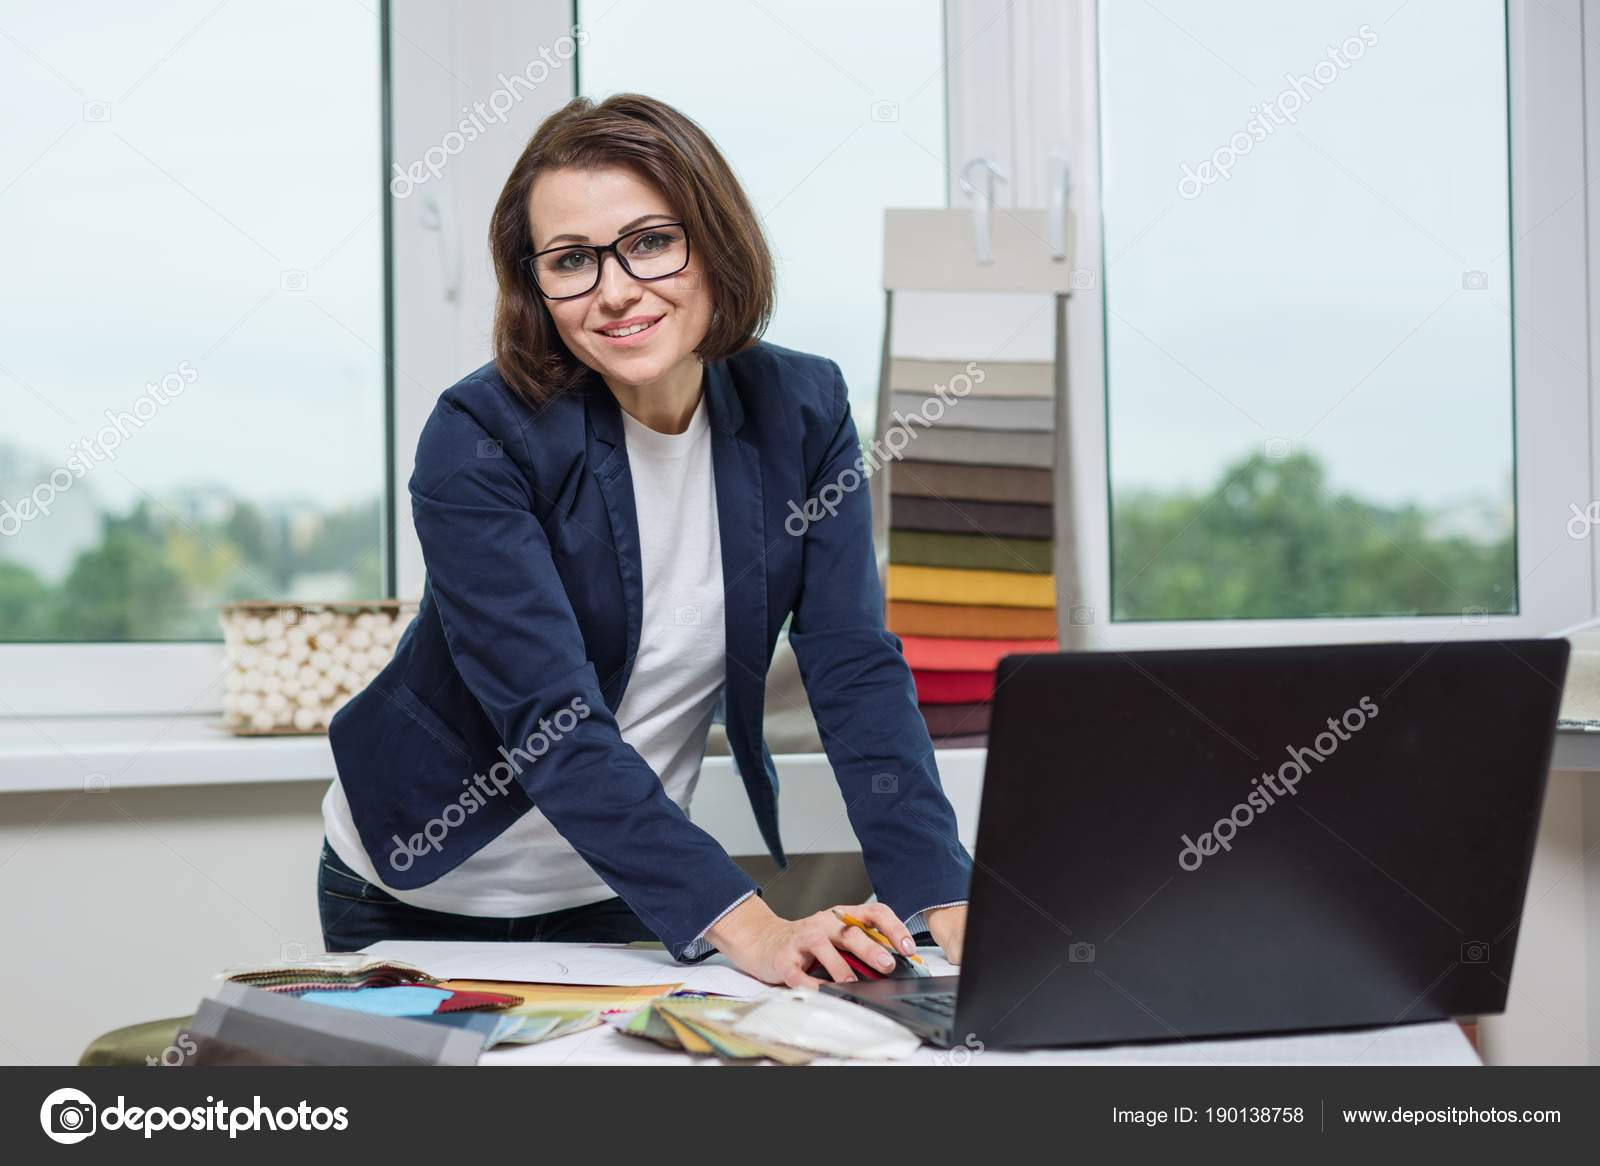 Wonderful Depositphotos_190138758 Stock Photo Designer Or Architect Posing And